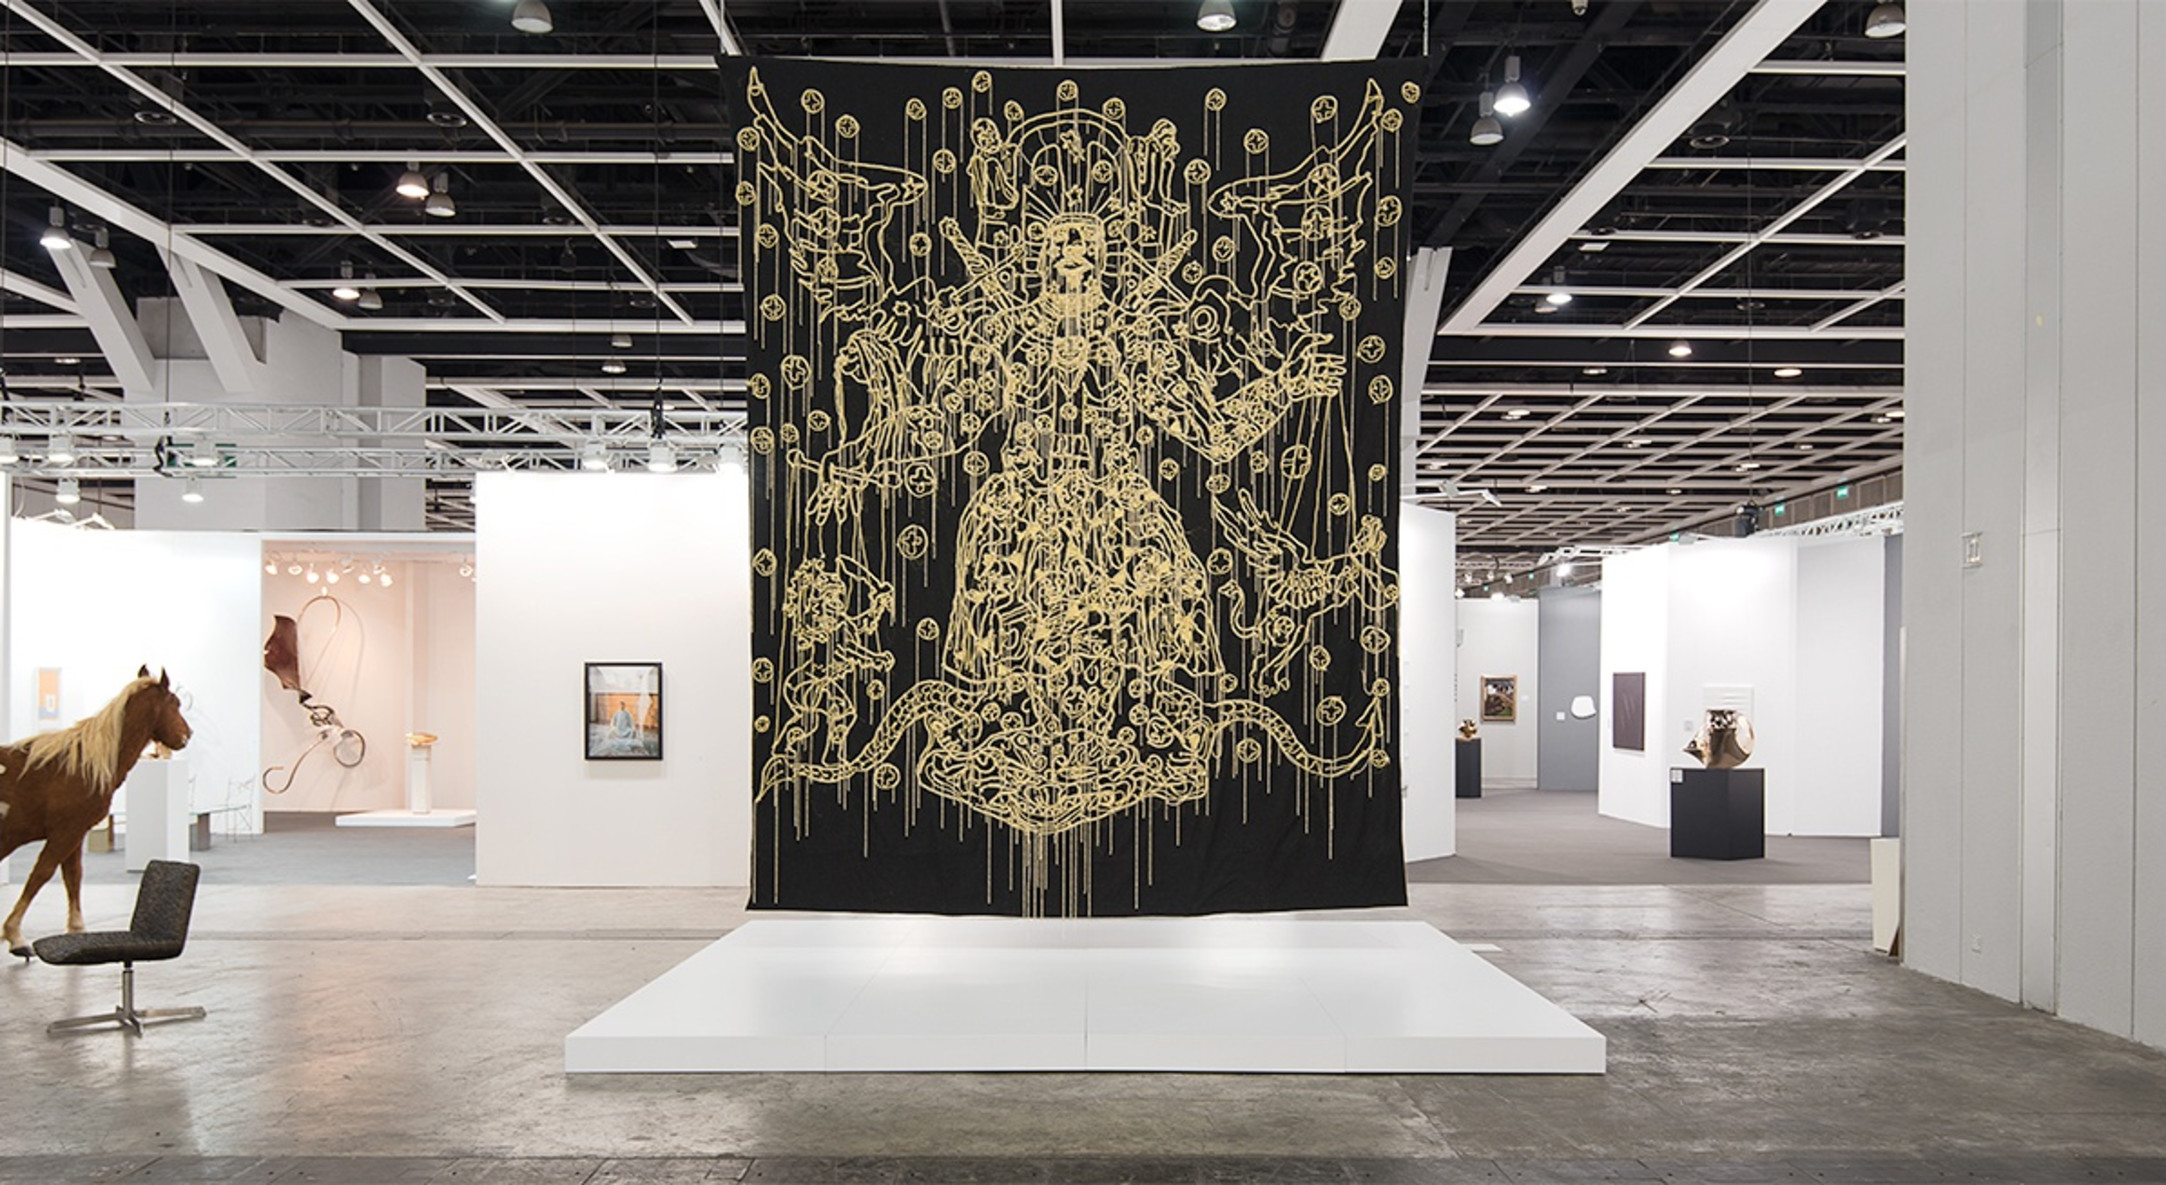 Hew Locke, Chariots of the Gods, 2009, Cord and bead embroidery on cloth, 480 x 375 cm, 189 x 147 5/8 in